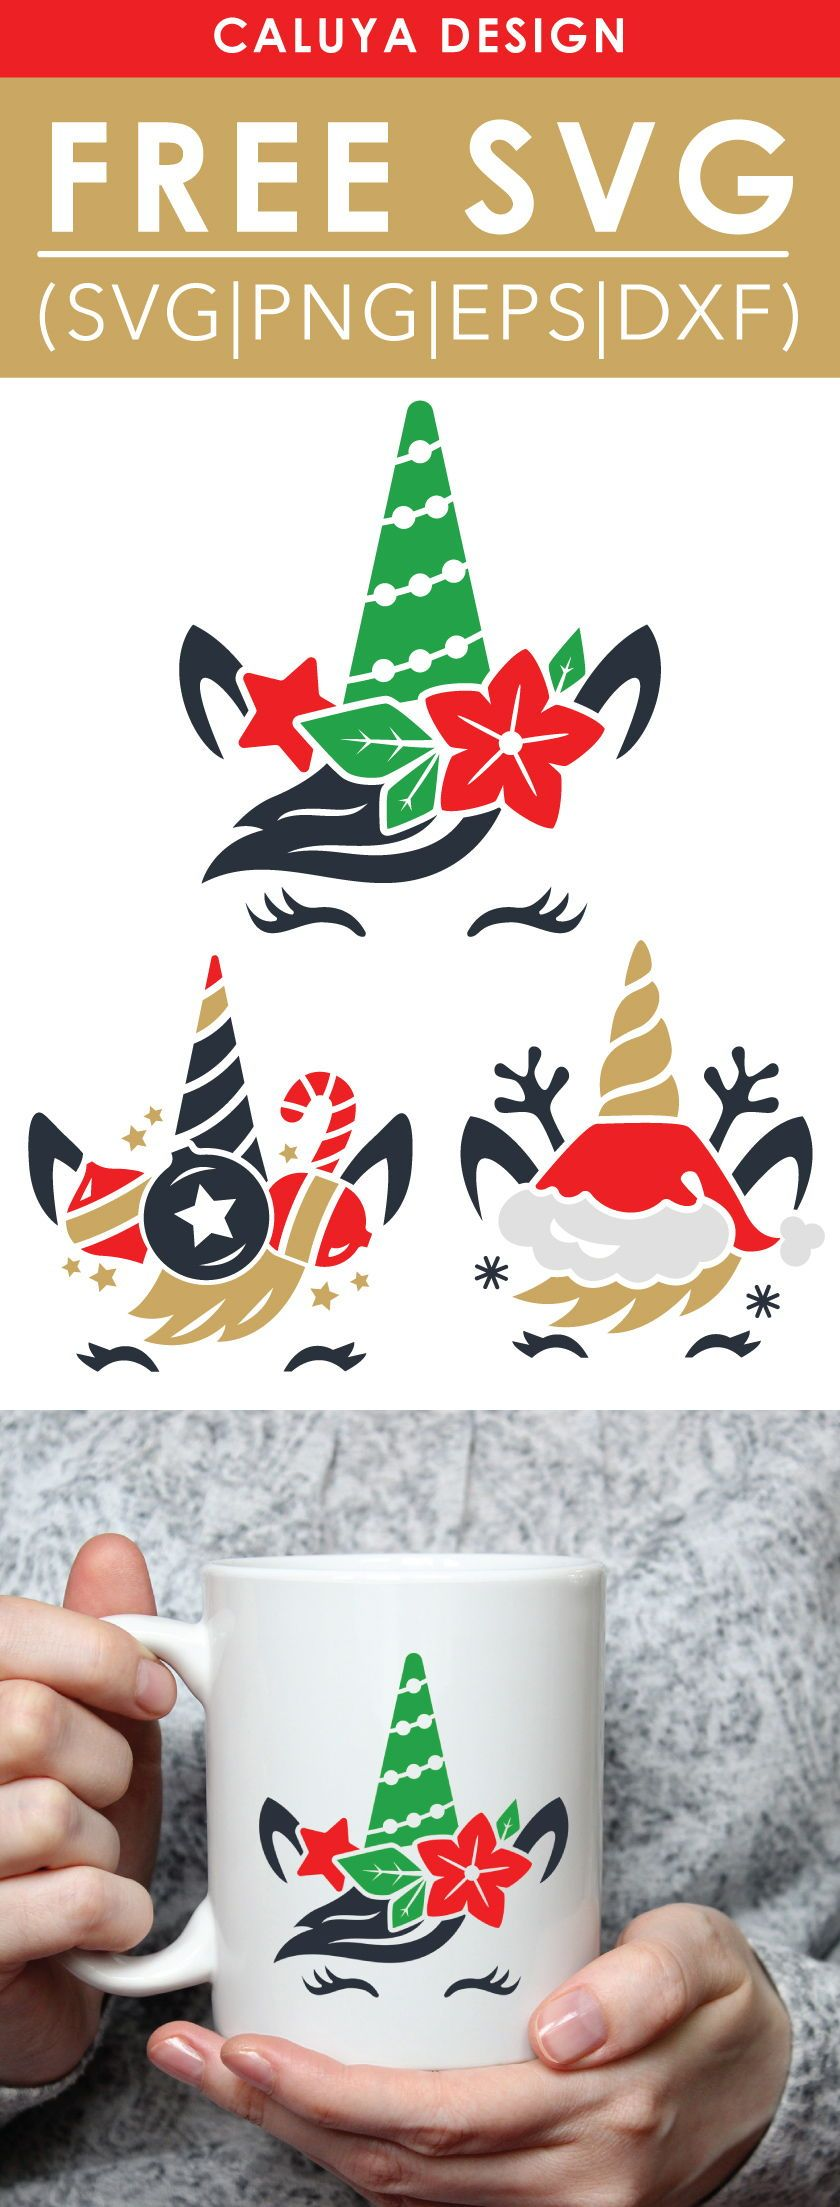 Free Christmas Unicorn SVG, PNG, EPS & DXF by #cricutvinylprojects